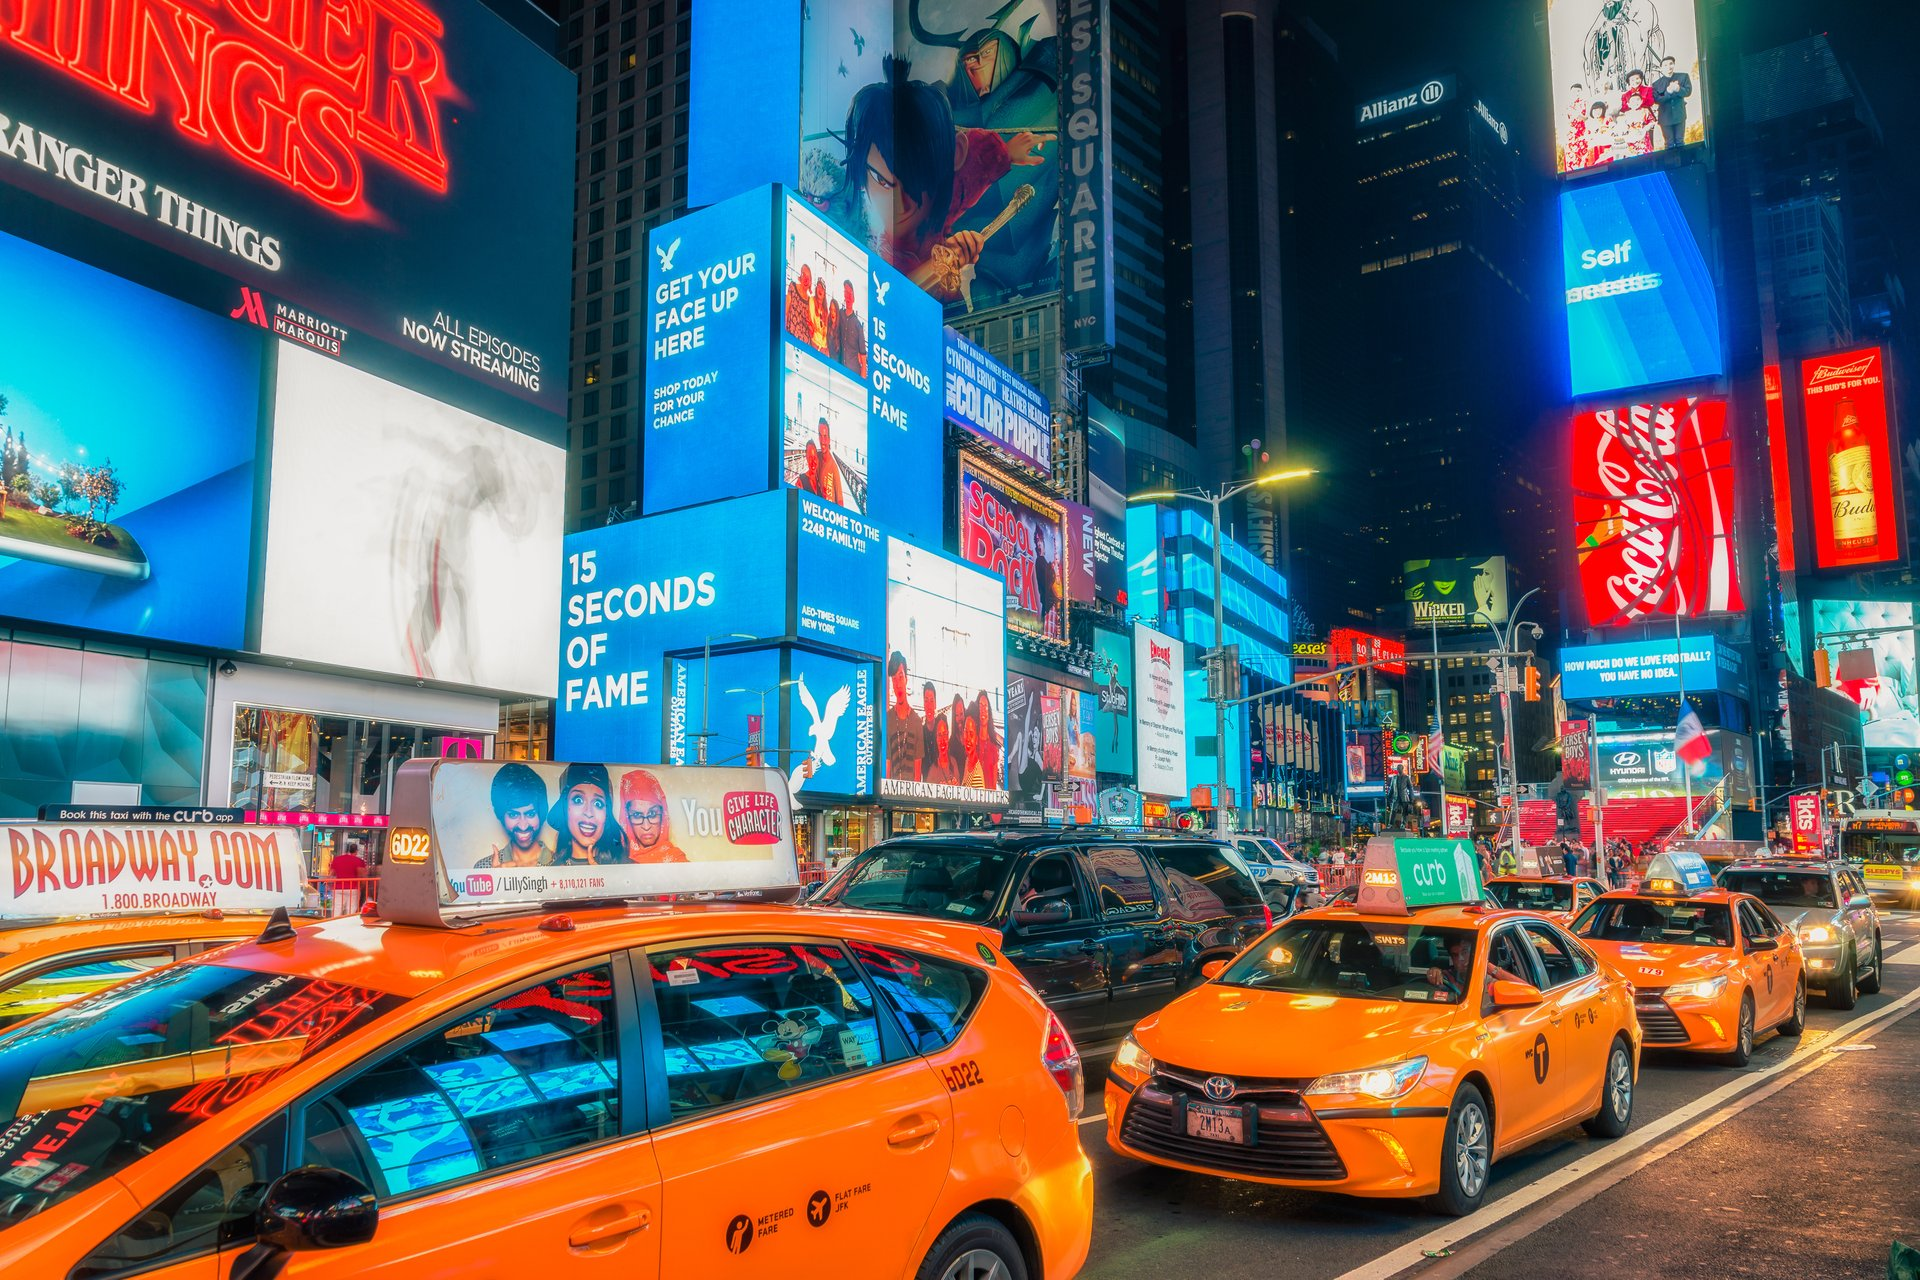 Nighttime in Times Square, New York City.